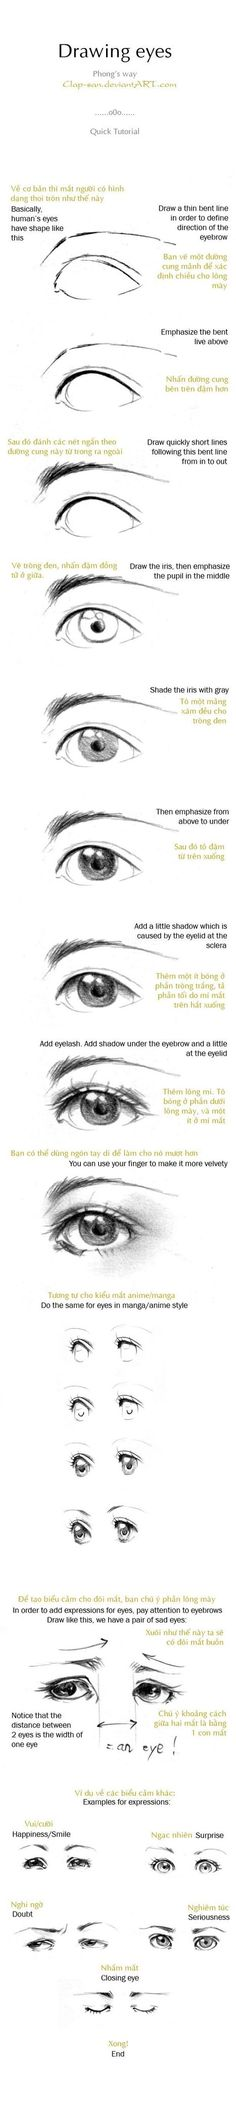 Eye Drawing Reference Guide   Drawing References and Resources   Scoop.it